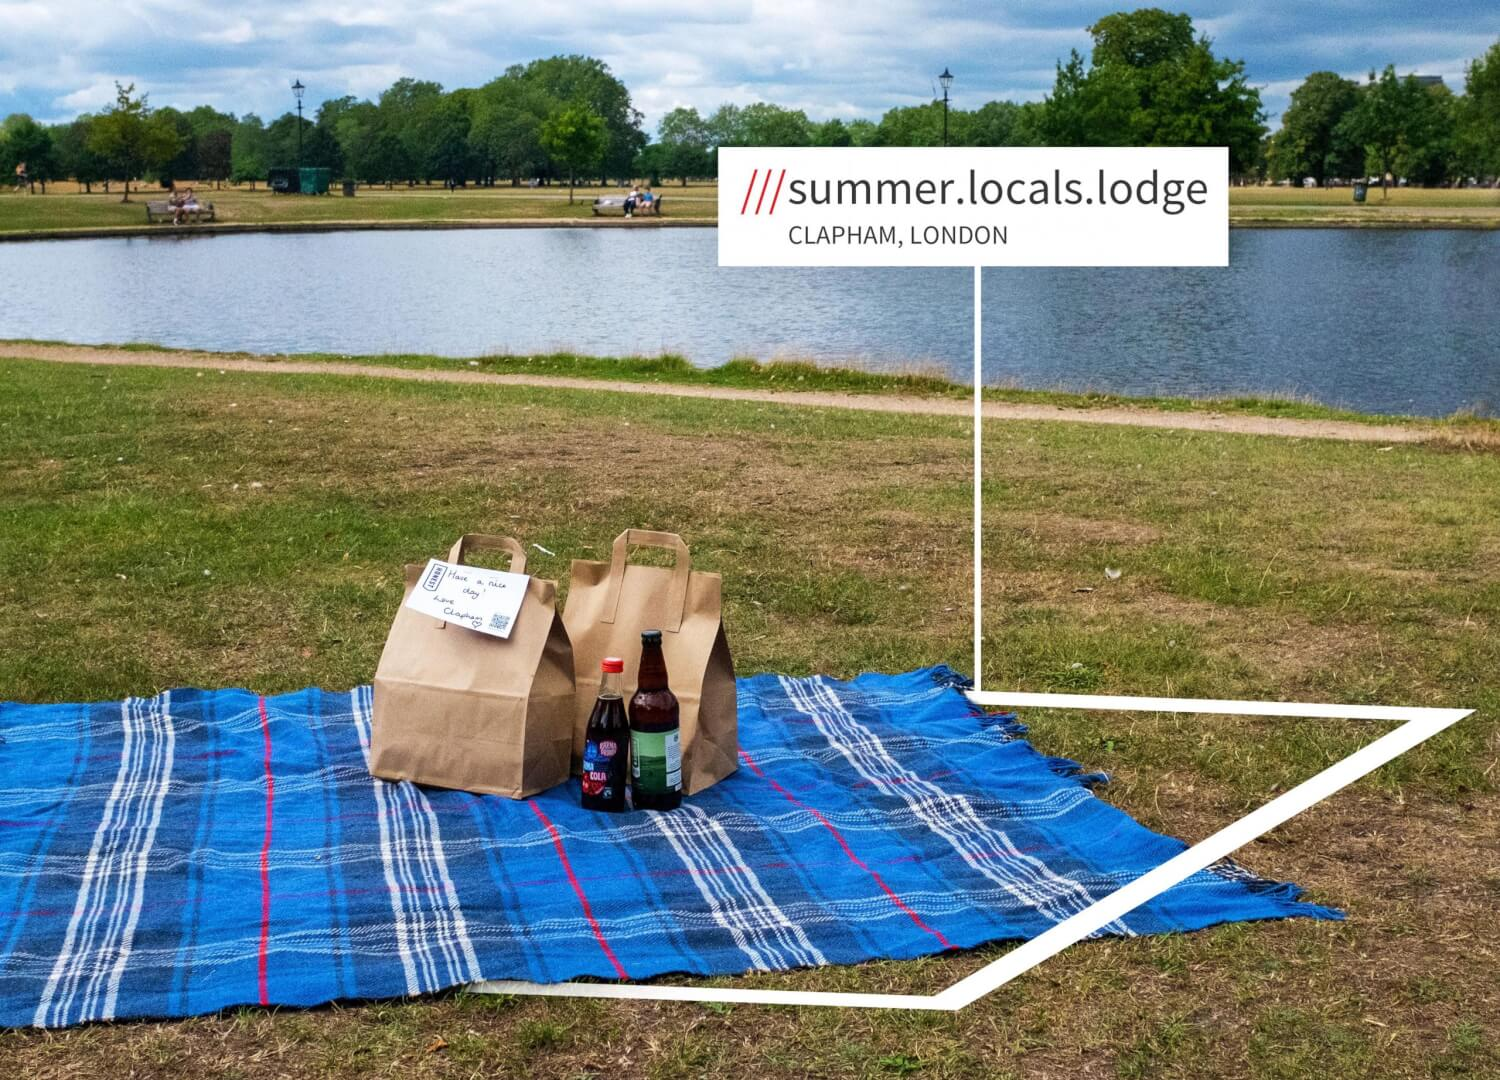 A picnic blanket on Clapham Common, with a burger delivery